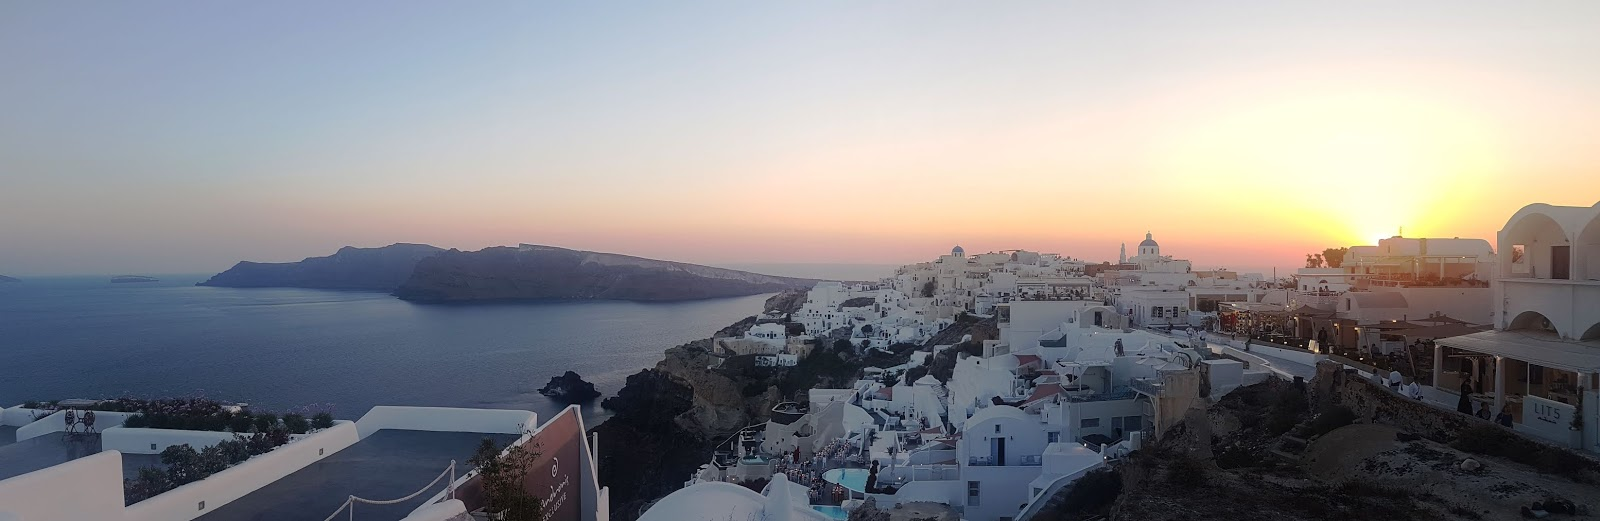 Sunset at Oia Santorini - how to travel in Santorini on a budget itinerary